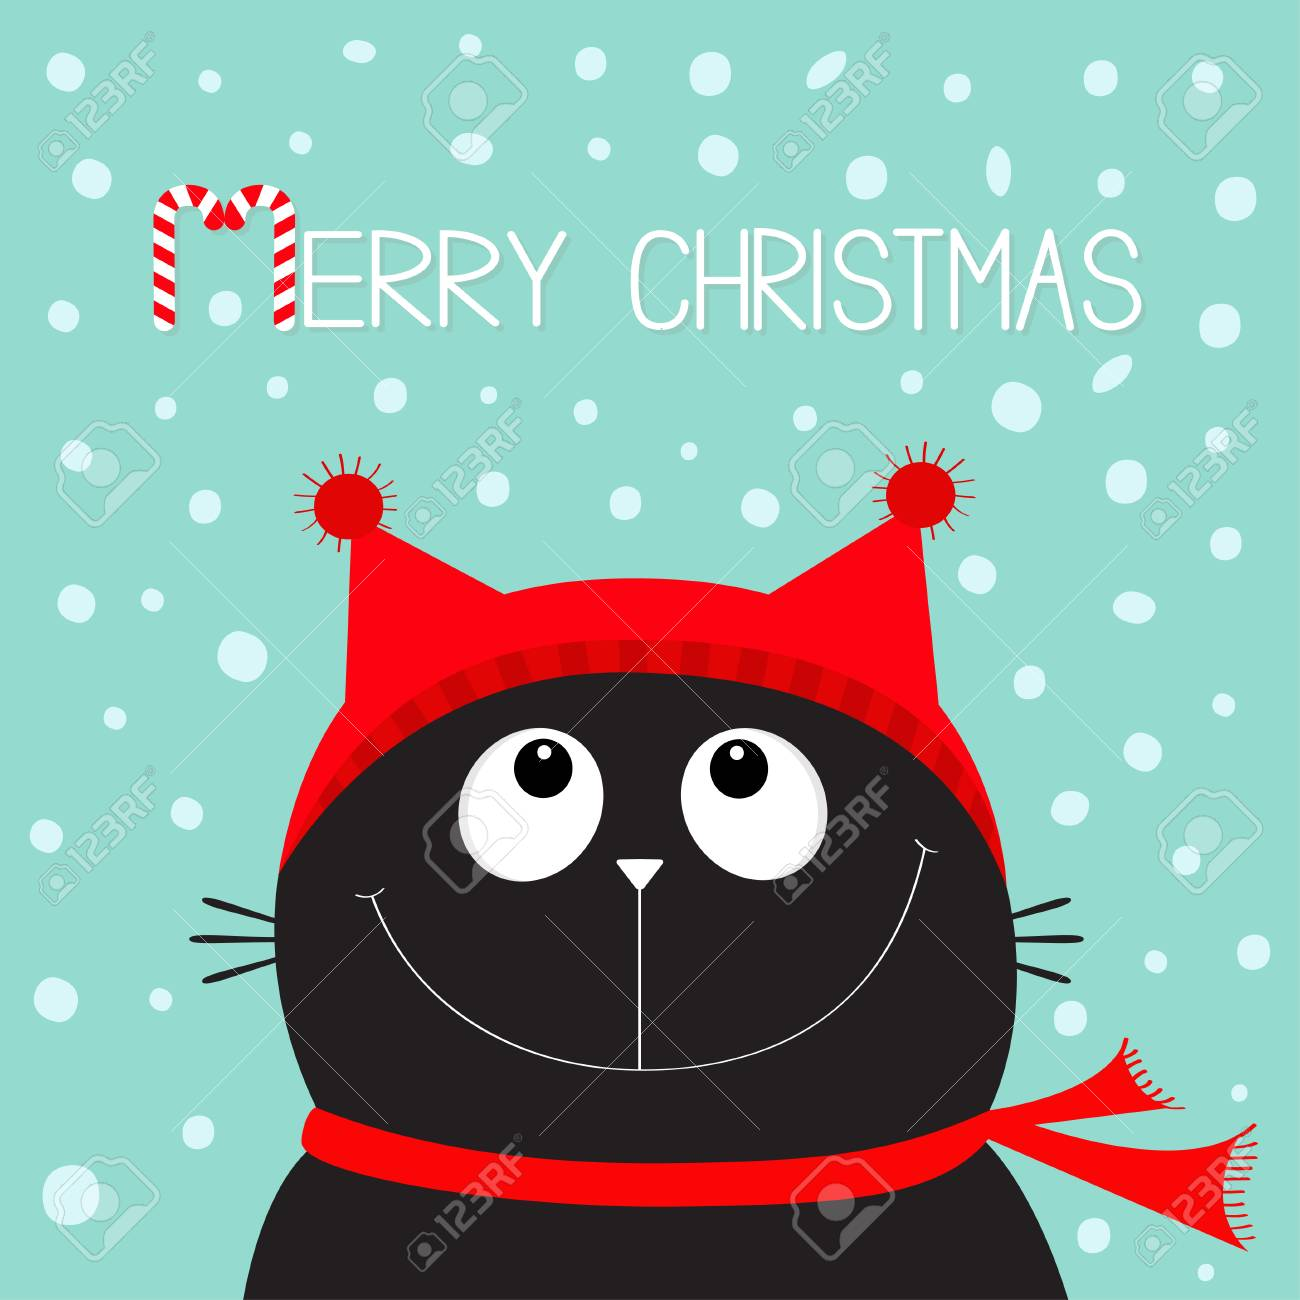 Merry Christmas candy cane text. Black Cat kitten head face looking..